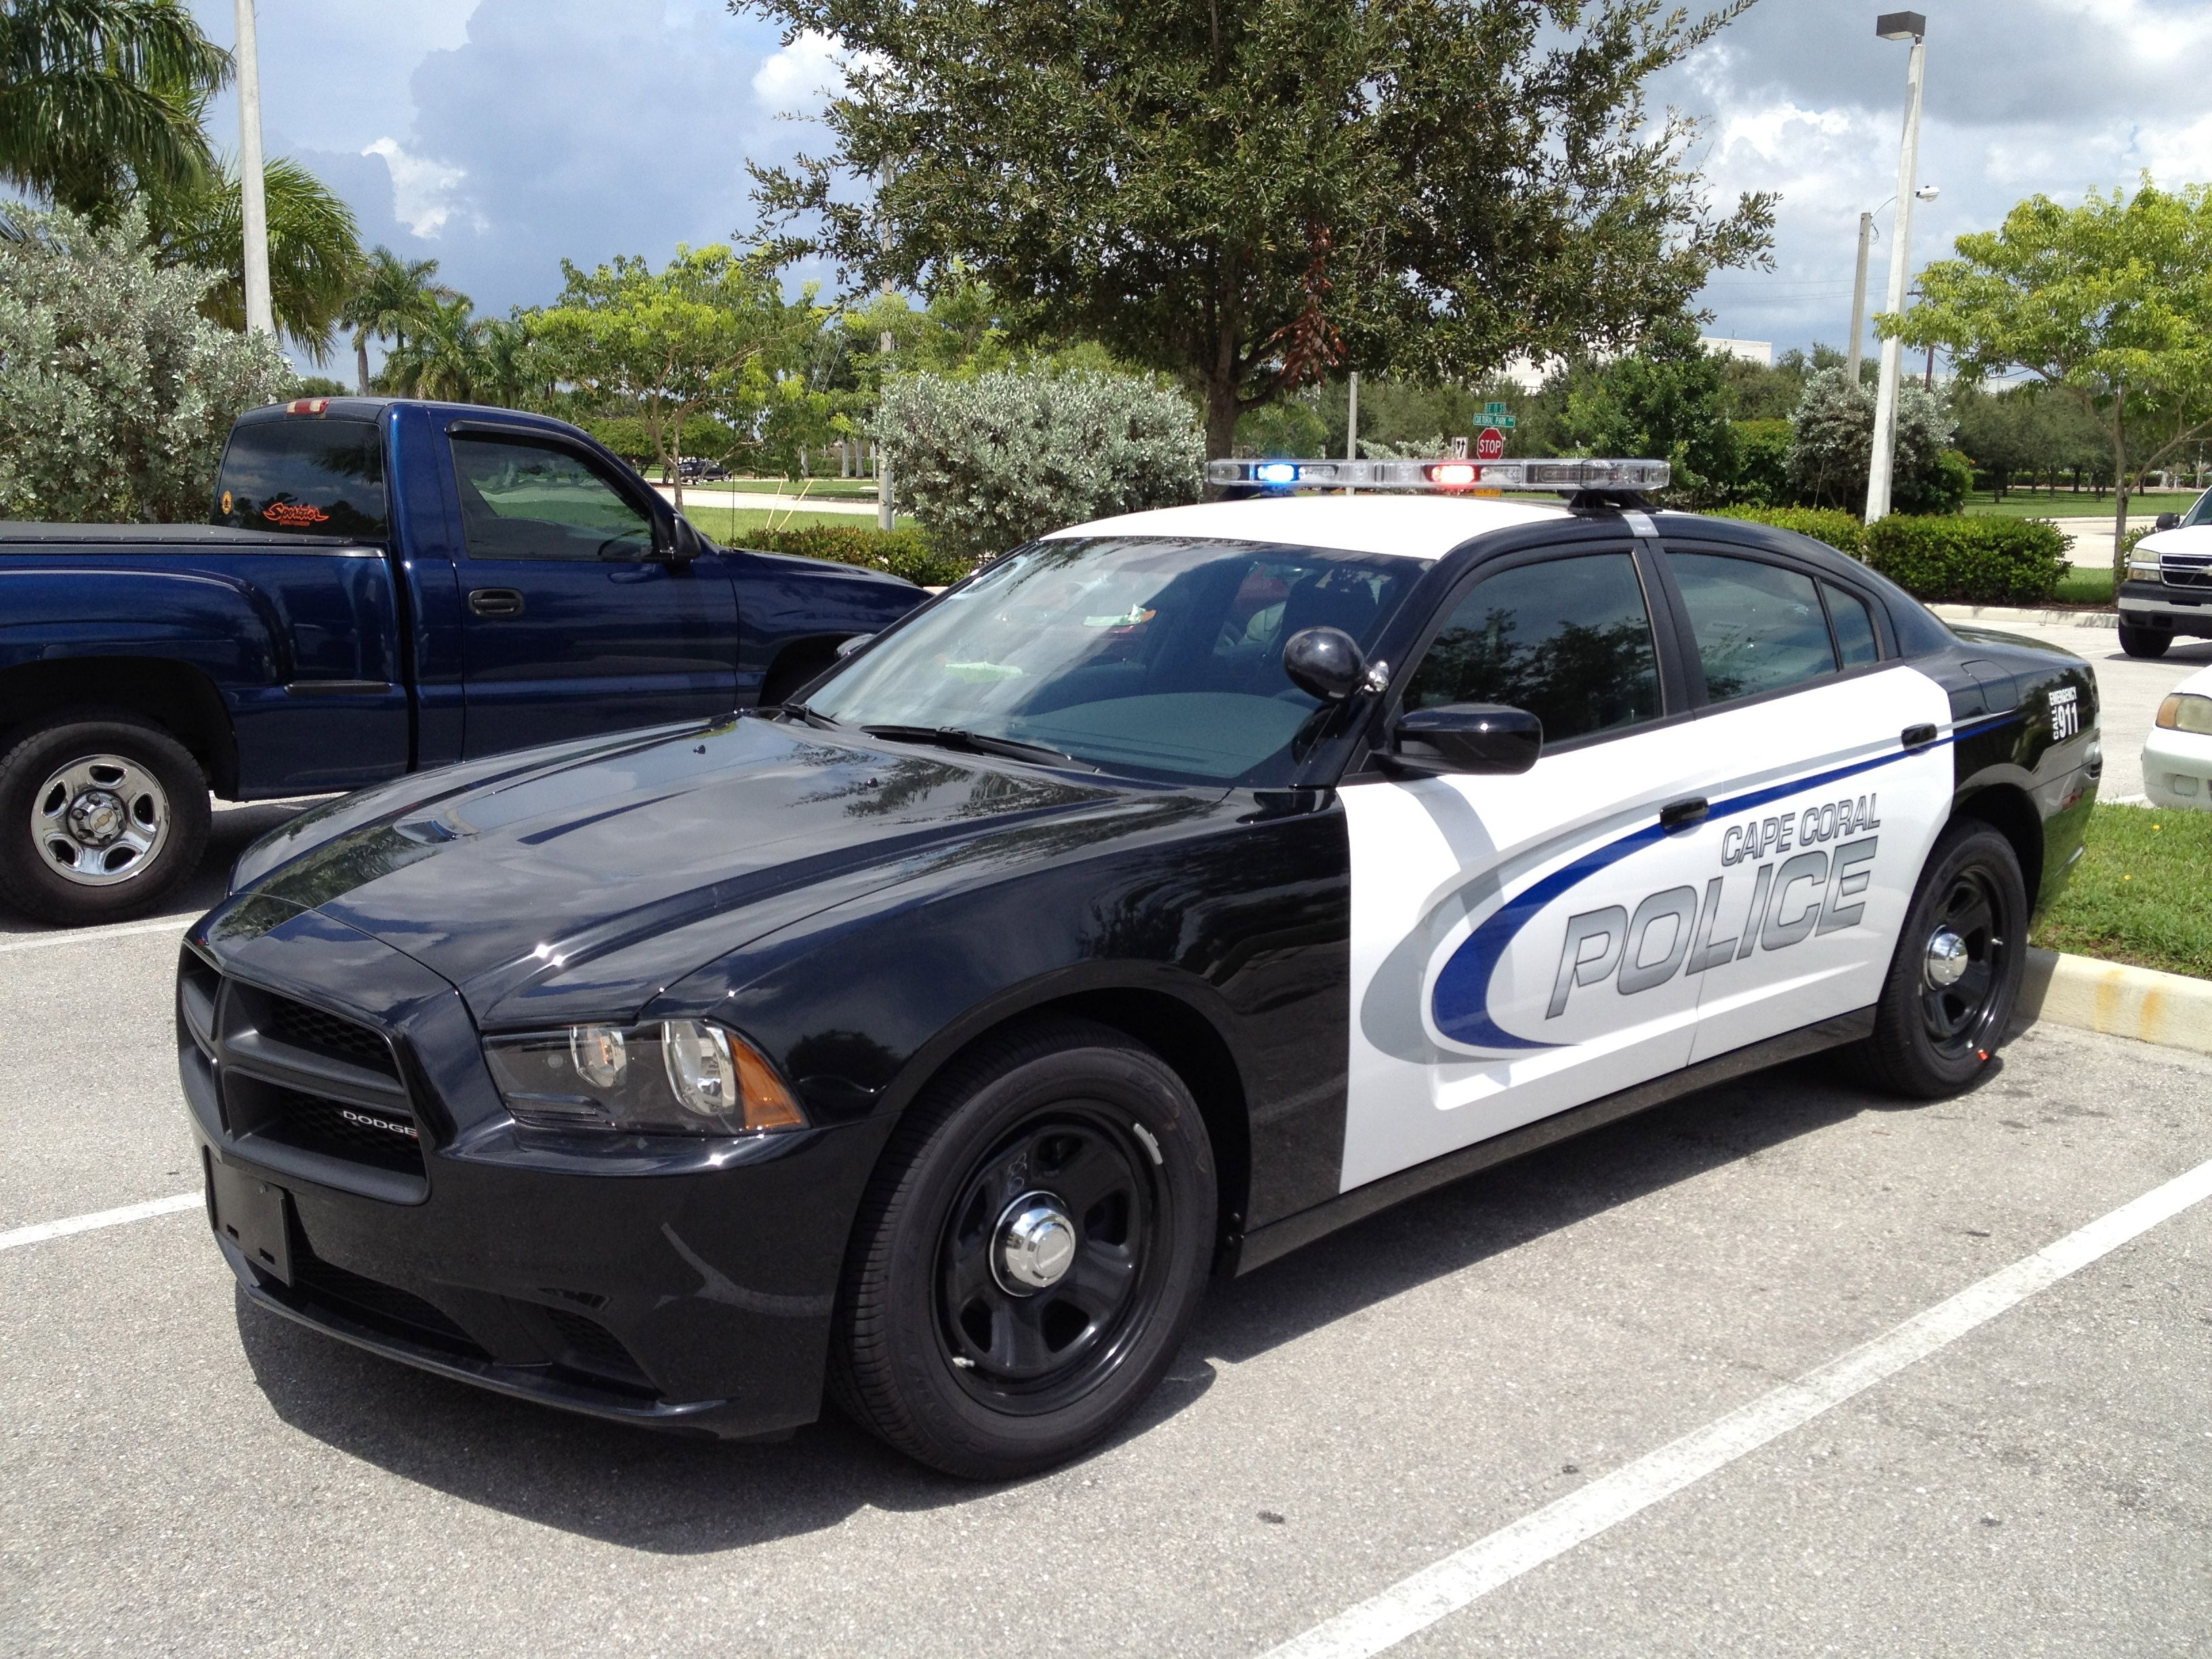 In 2012 The Cape Coral Police Department Began Its Transition To The 2013 Dodge Charger As Its Main Patrol Vehicle Police Cars Emergency Vehicles Dodge Charger